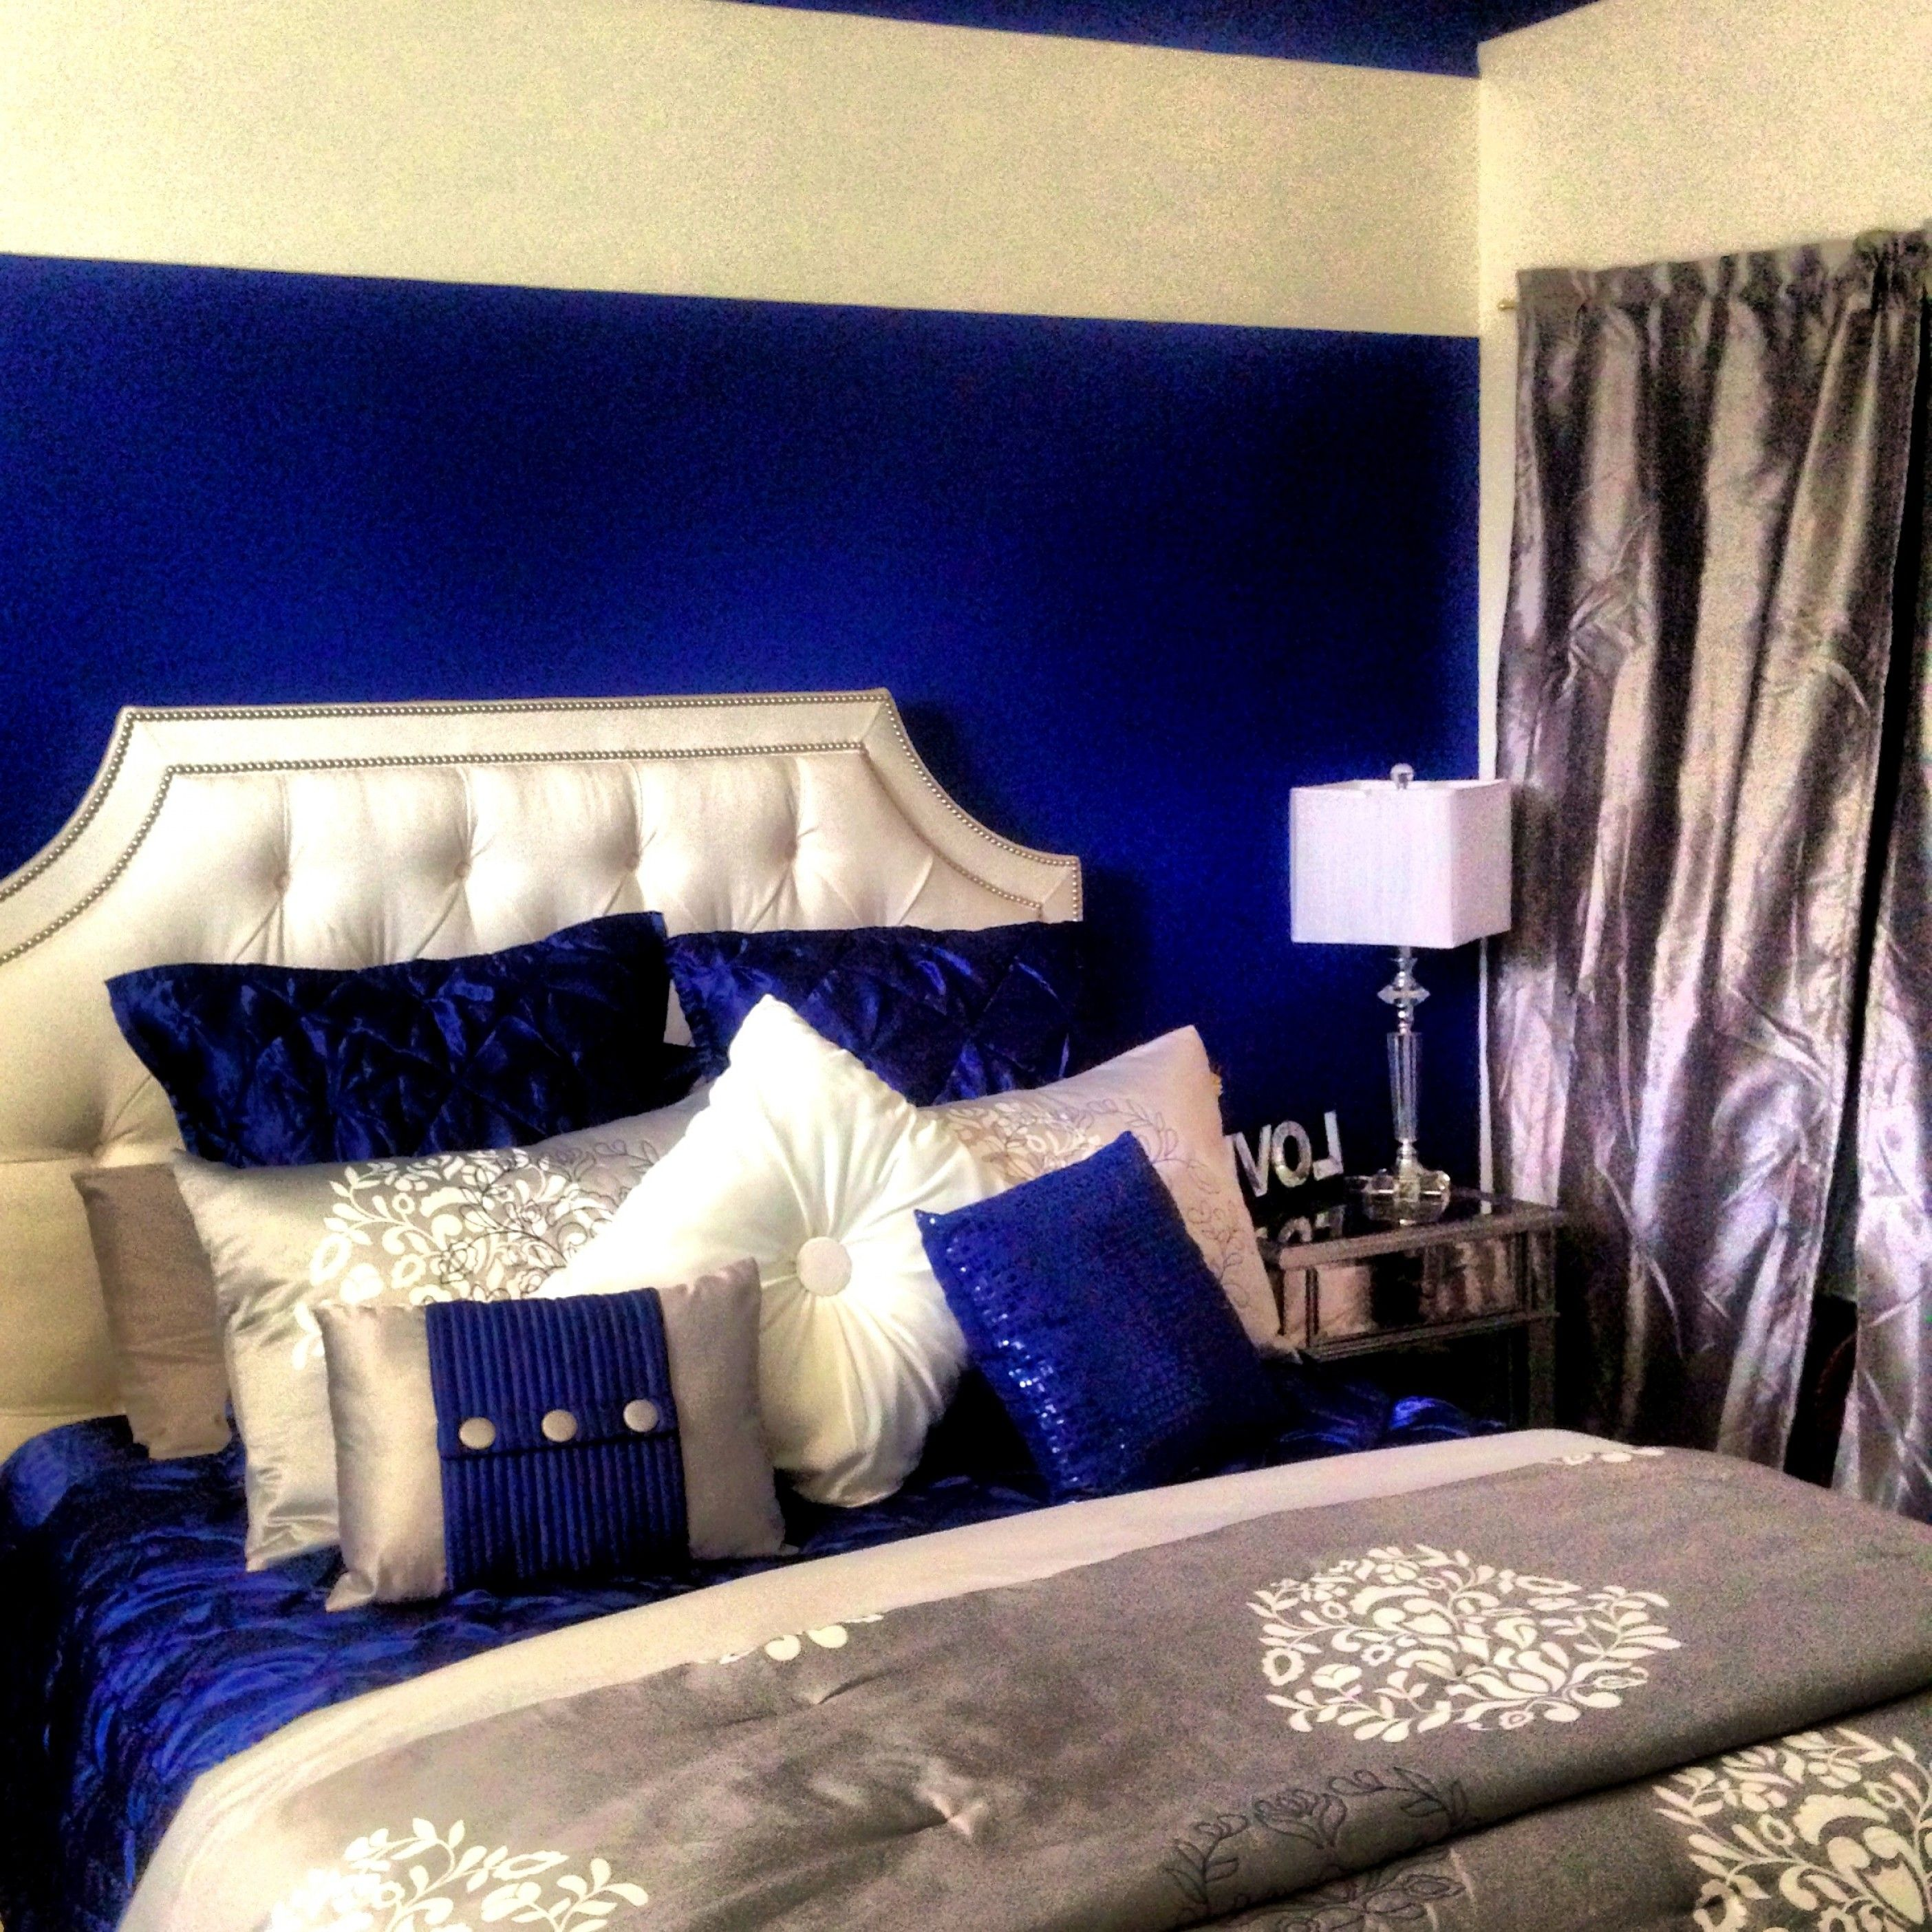 Blue Bedroom Designs Ideas Awesome Royal Blue And Black Bedroom Ideas  Bedroom Design  Pinterest Decorating Inspiration